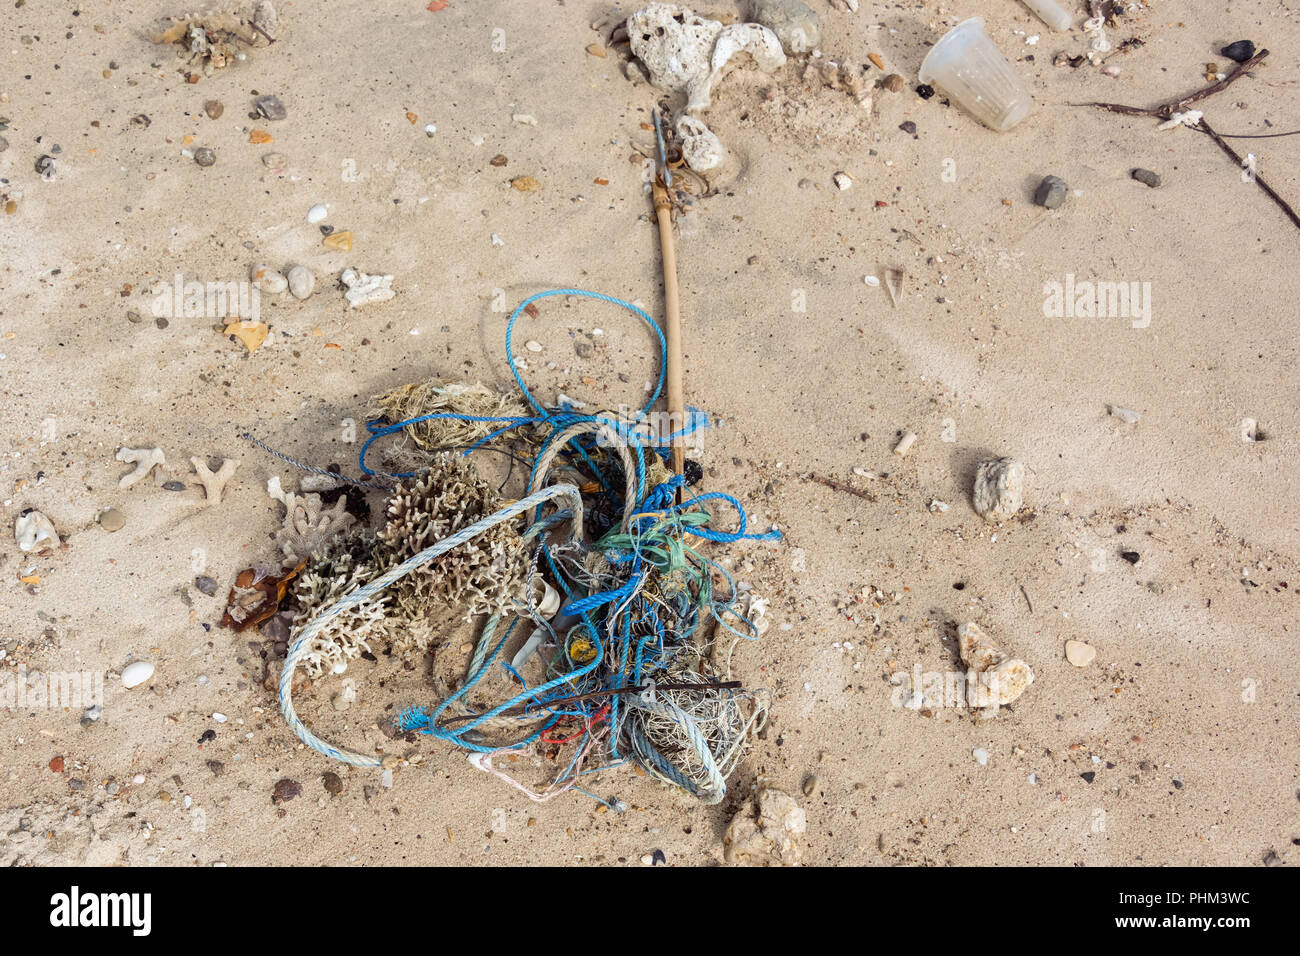 Ocean debris that can ensnare marine animals and birds, washed up on Komodo Island, Indonesia - Stock Image